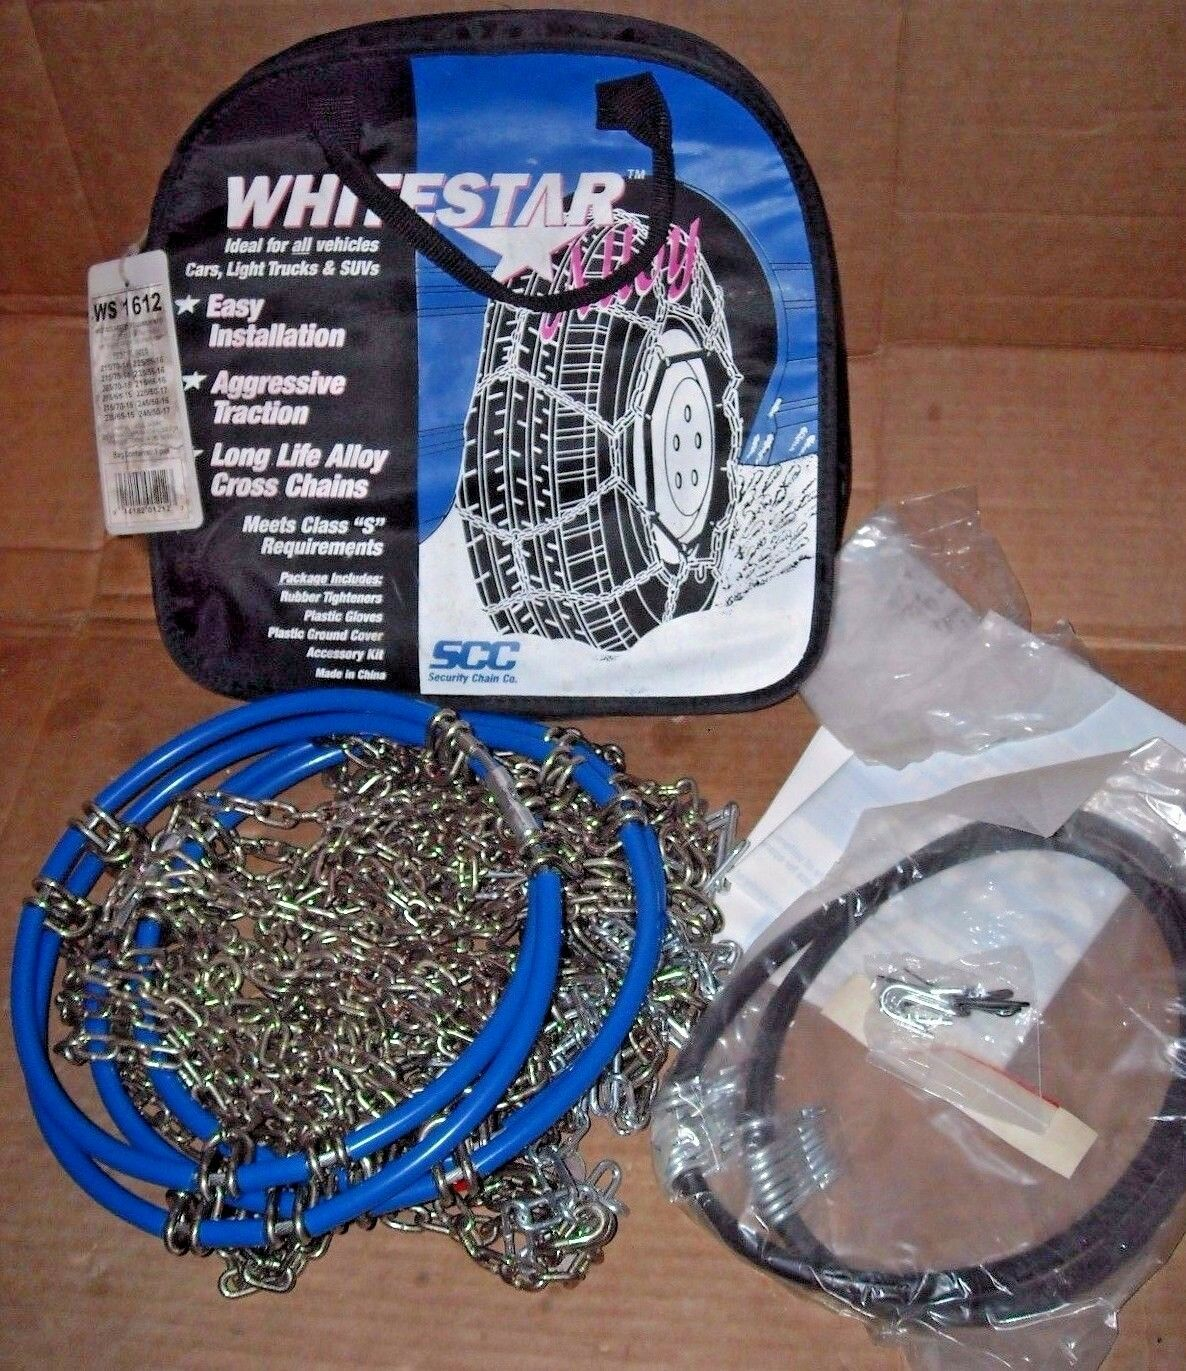 Whitestar Alloy Tire Snow Chains, Stock # WS1612, Never Used